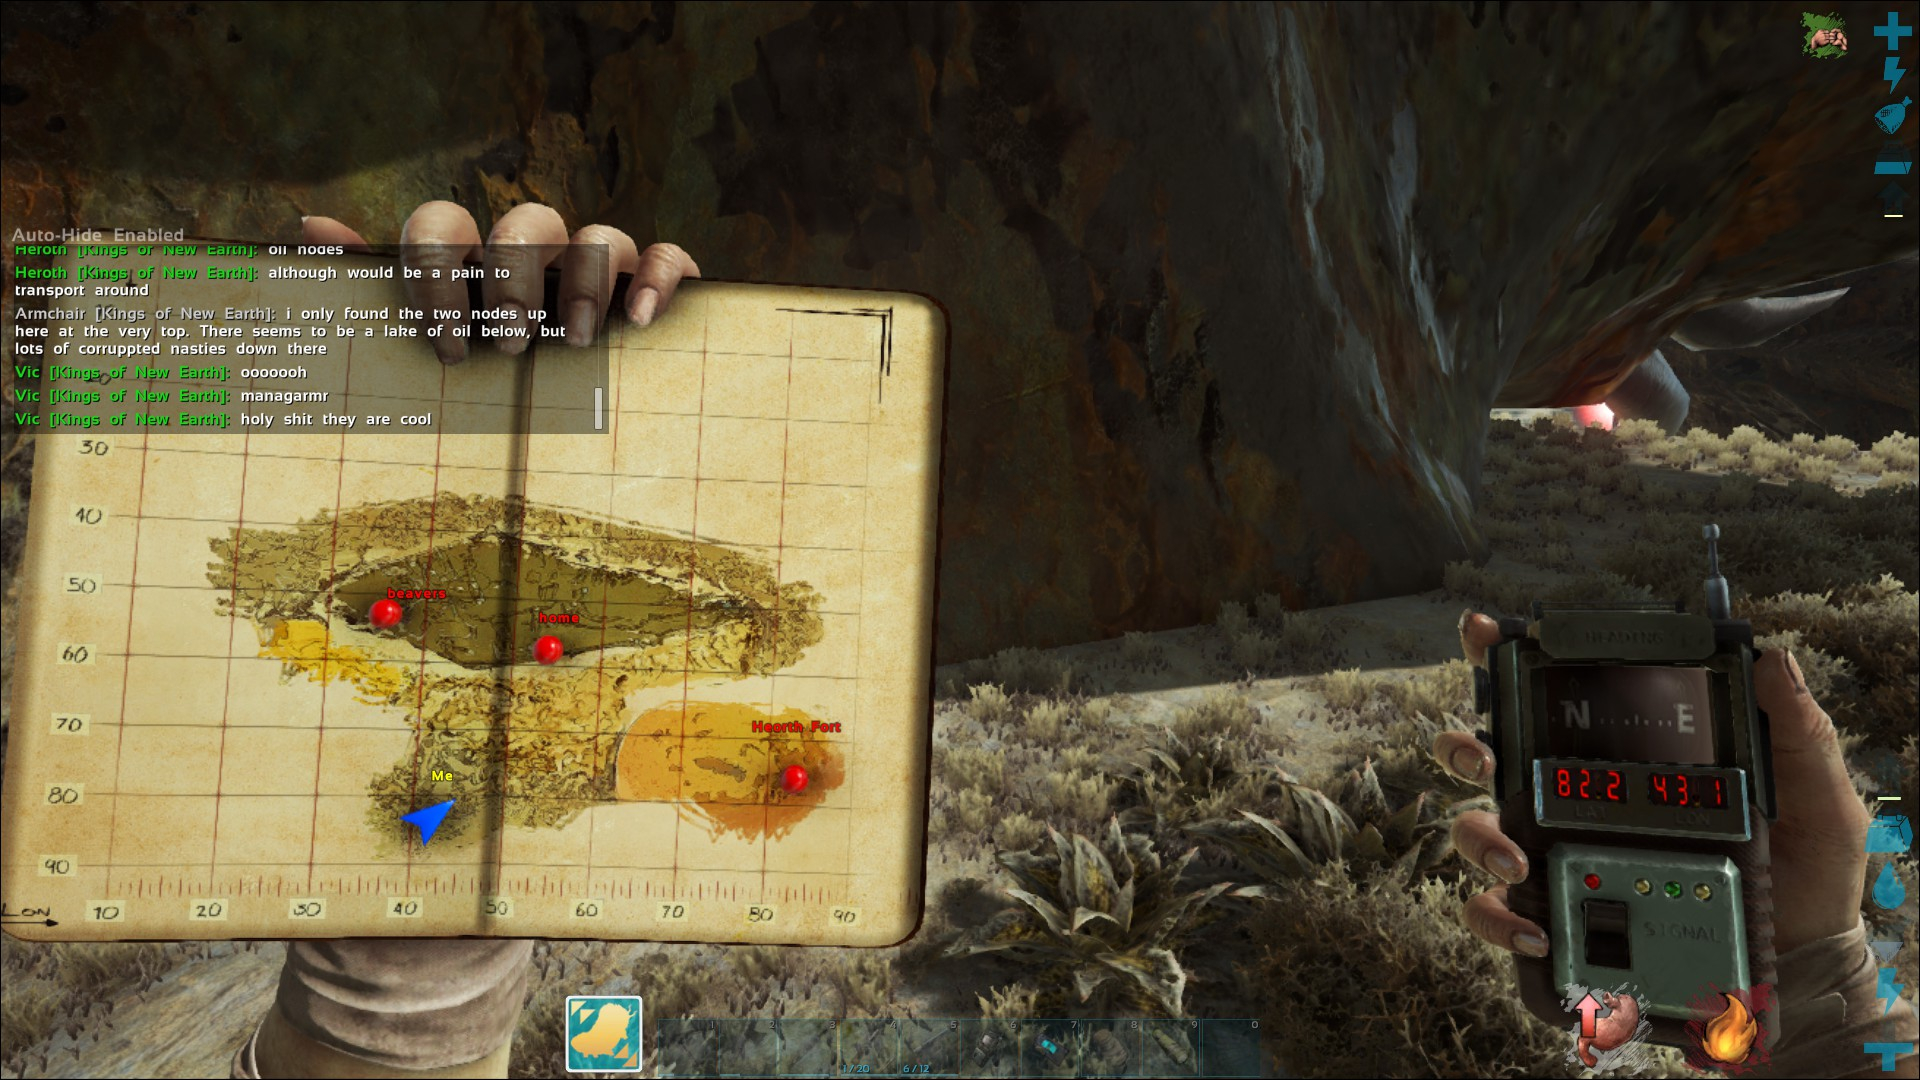 ARK: Survival Evolved] And on his back, the Disc    wait, no